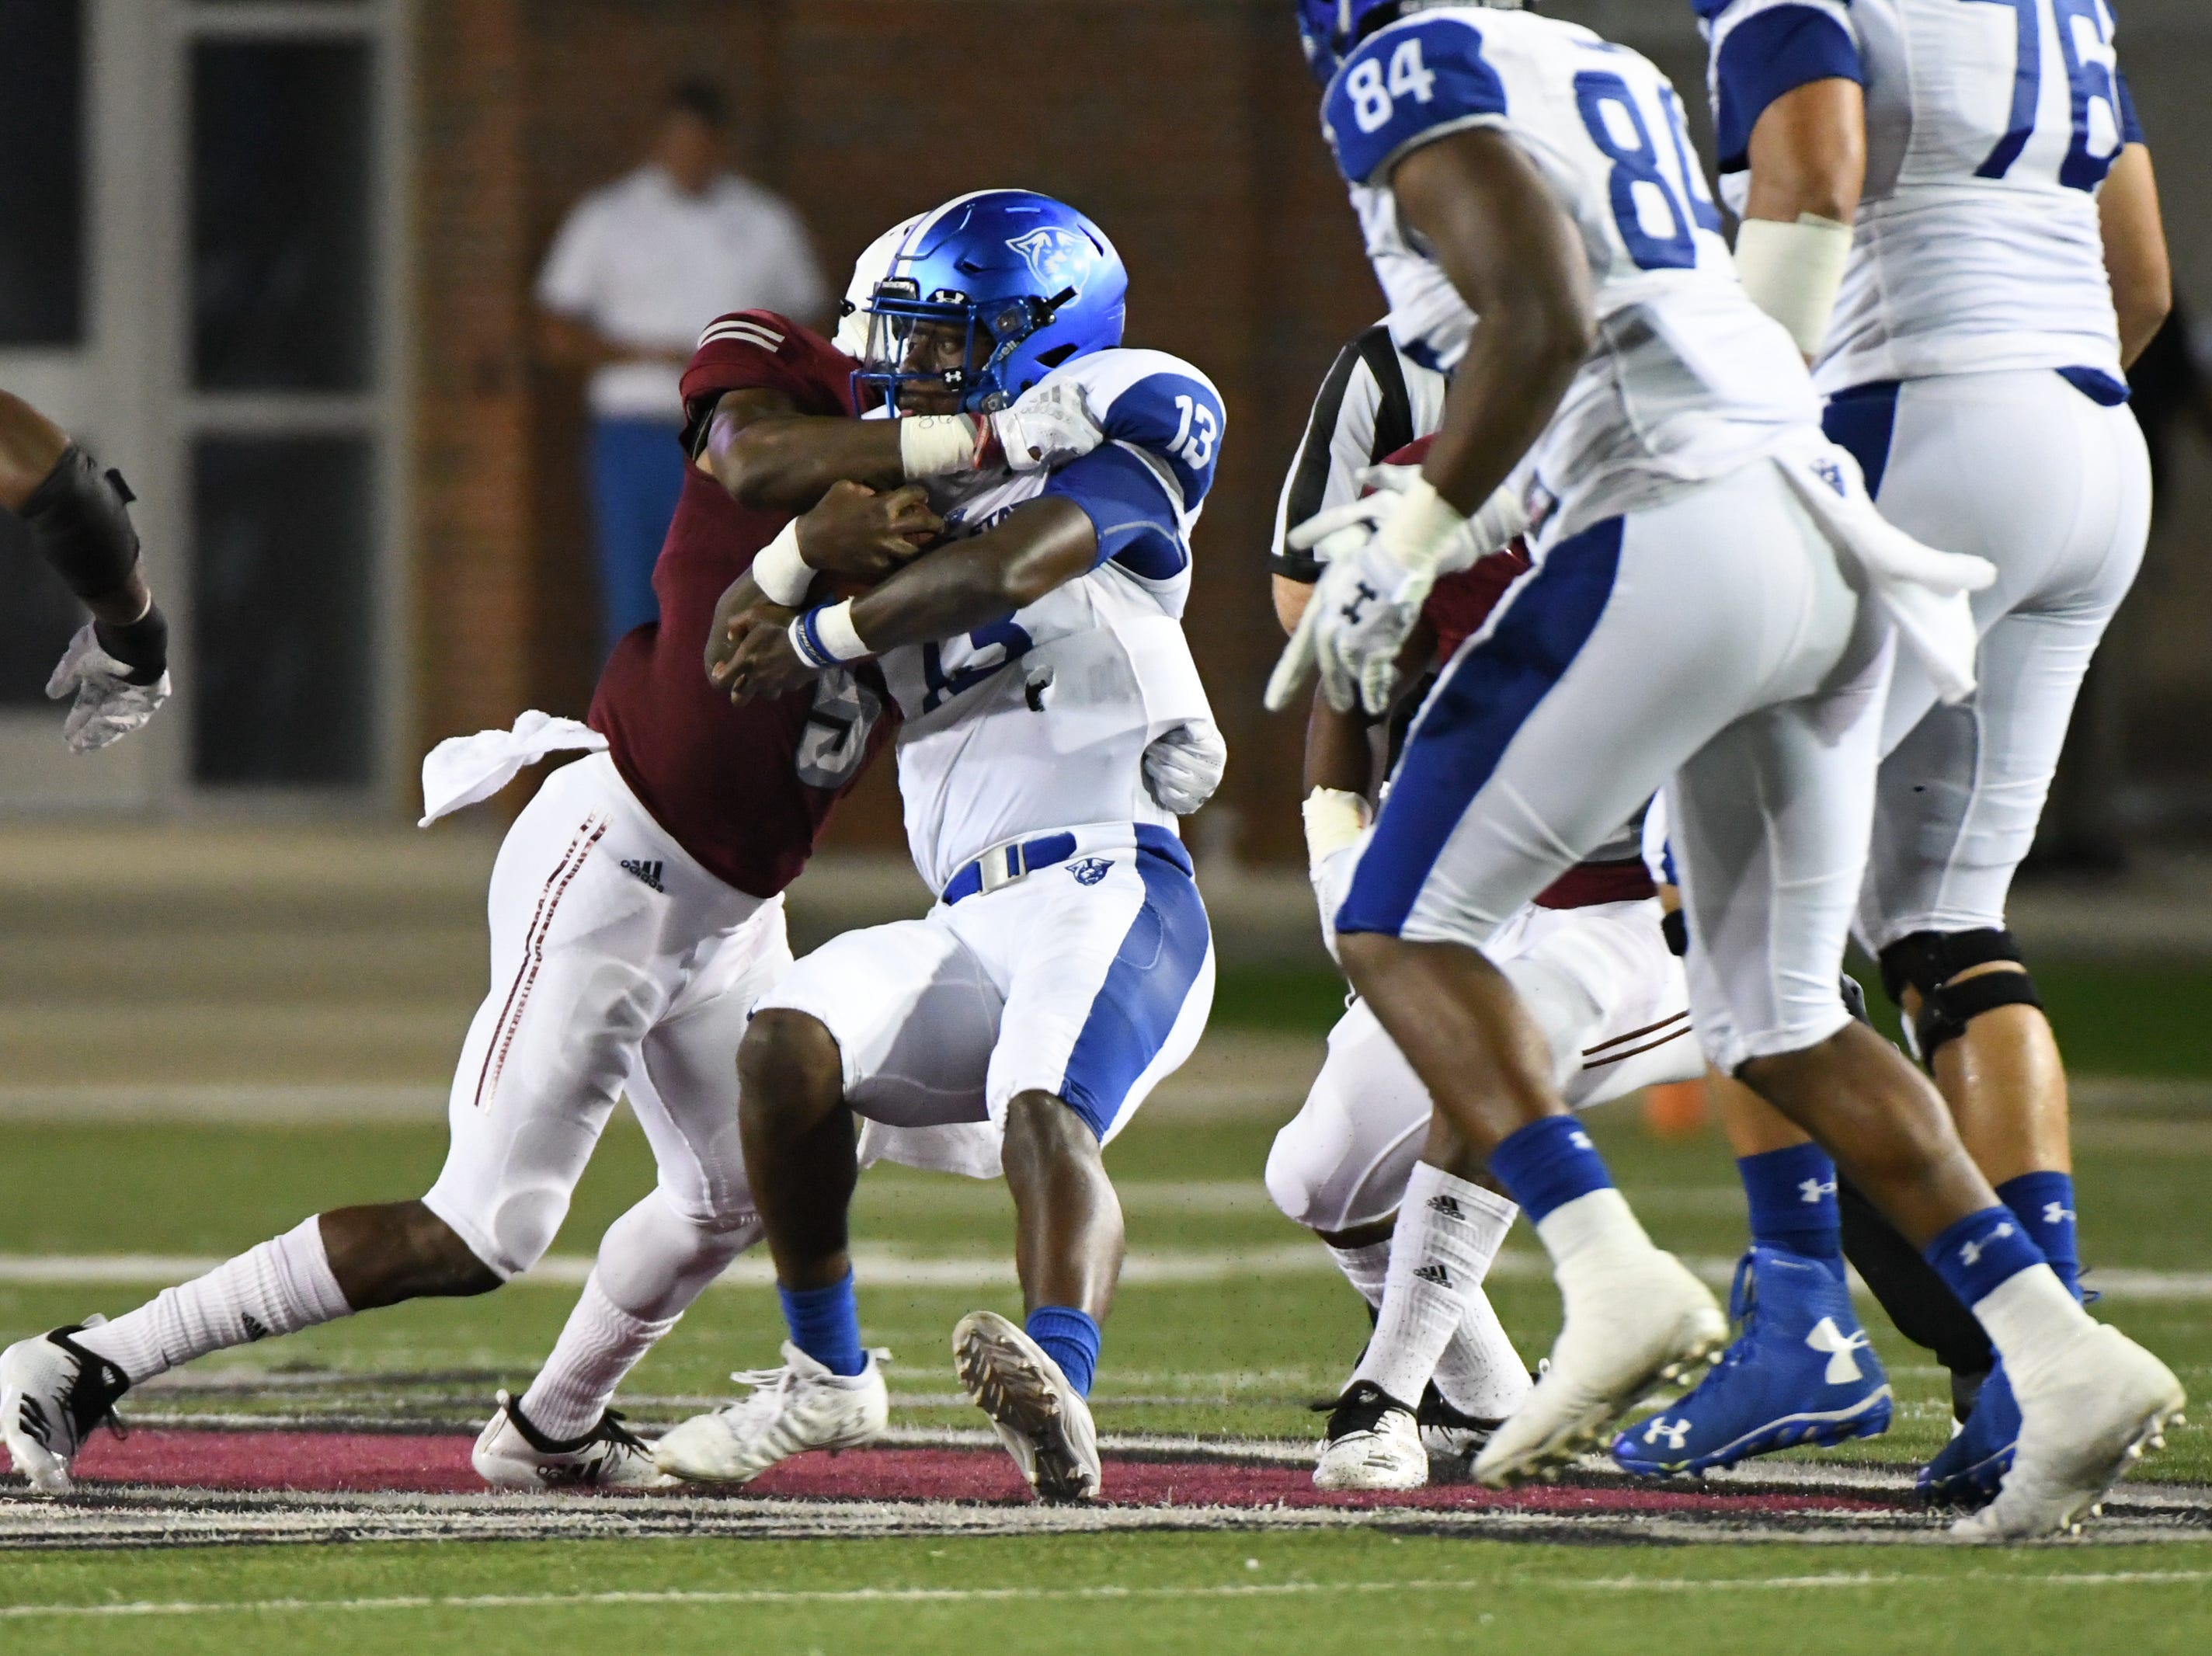 Georgia State Panthers quarterback Dan Ellington (13) is tackled by Troy Trojans safety Cedarius Rookard (5) at Veteran's Memorial Stadium in Troy, Ala., on Thursday, Oct. 4, 2018. (Chip Dillard/Special to the Montgomery Advertiser)